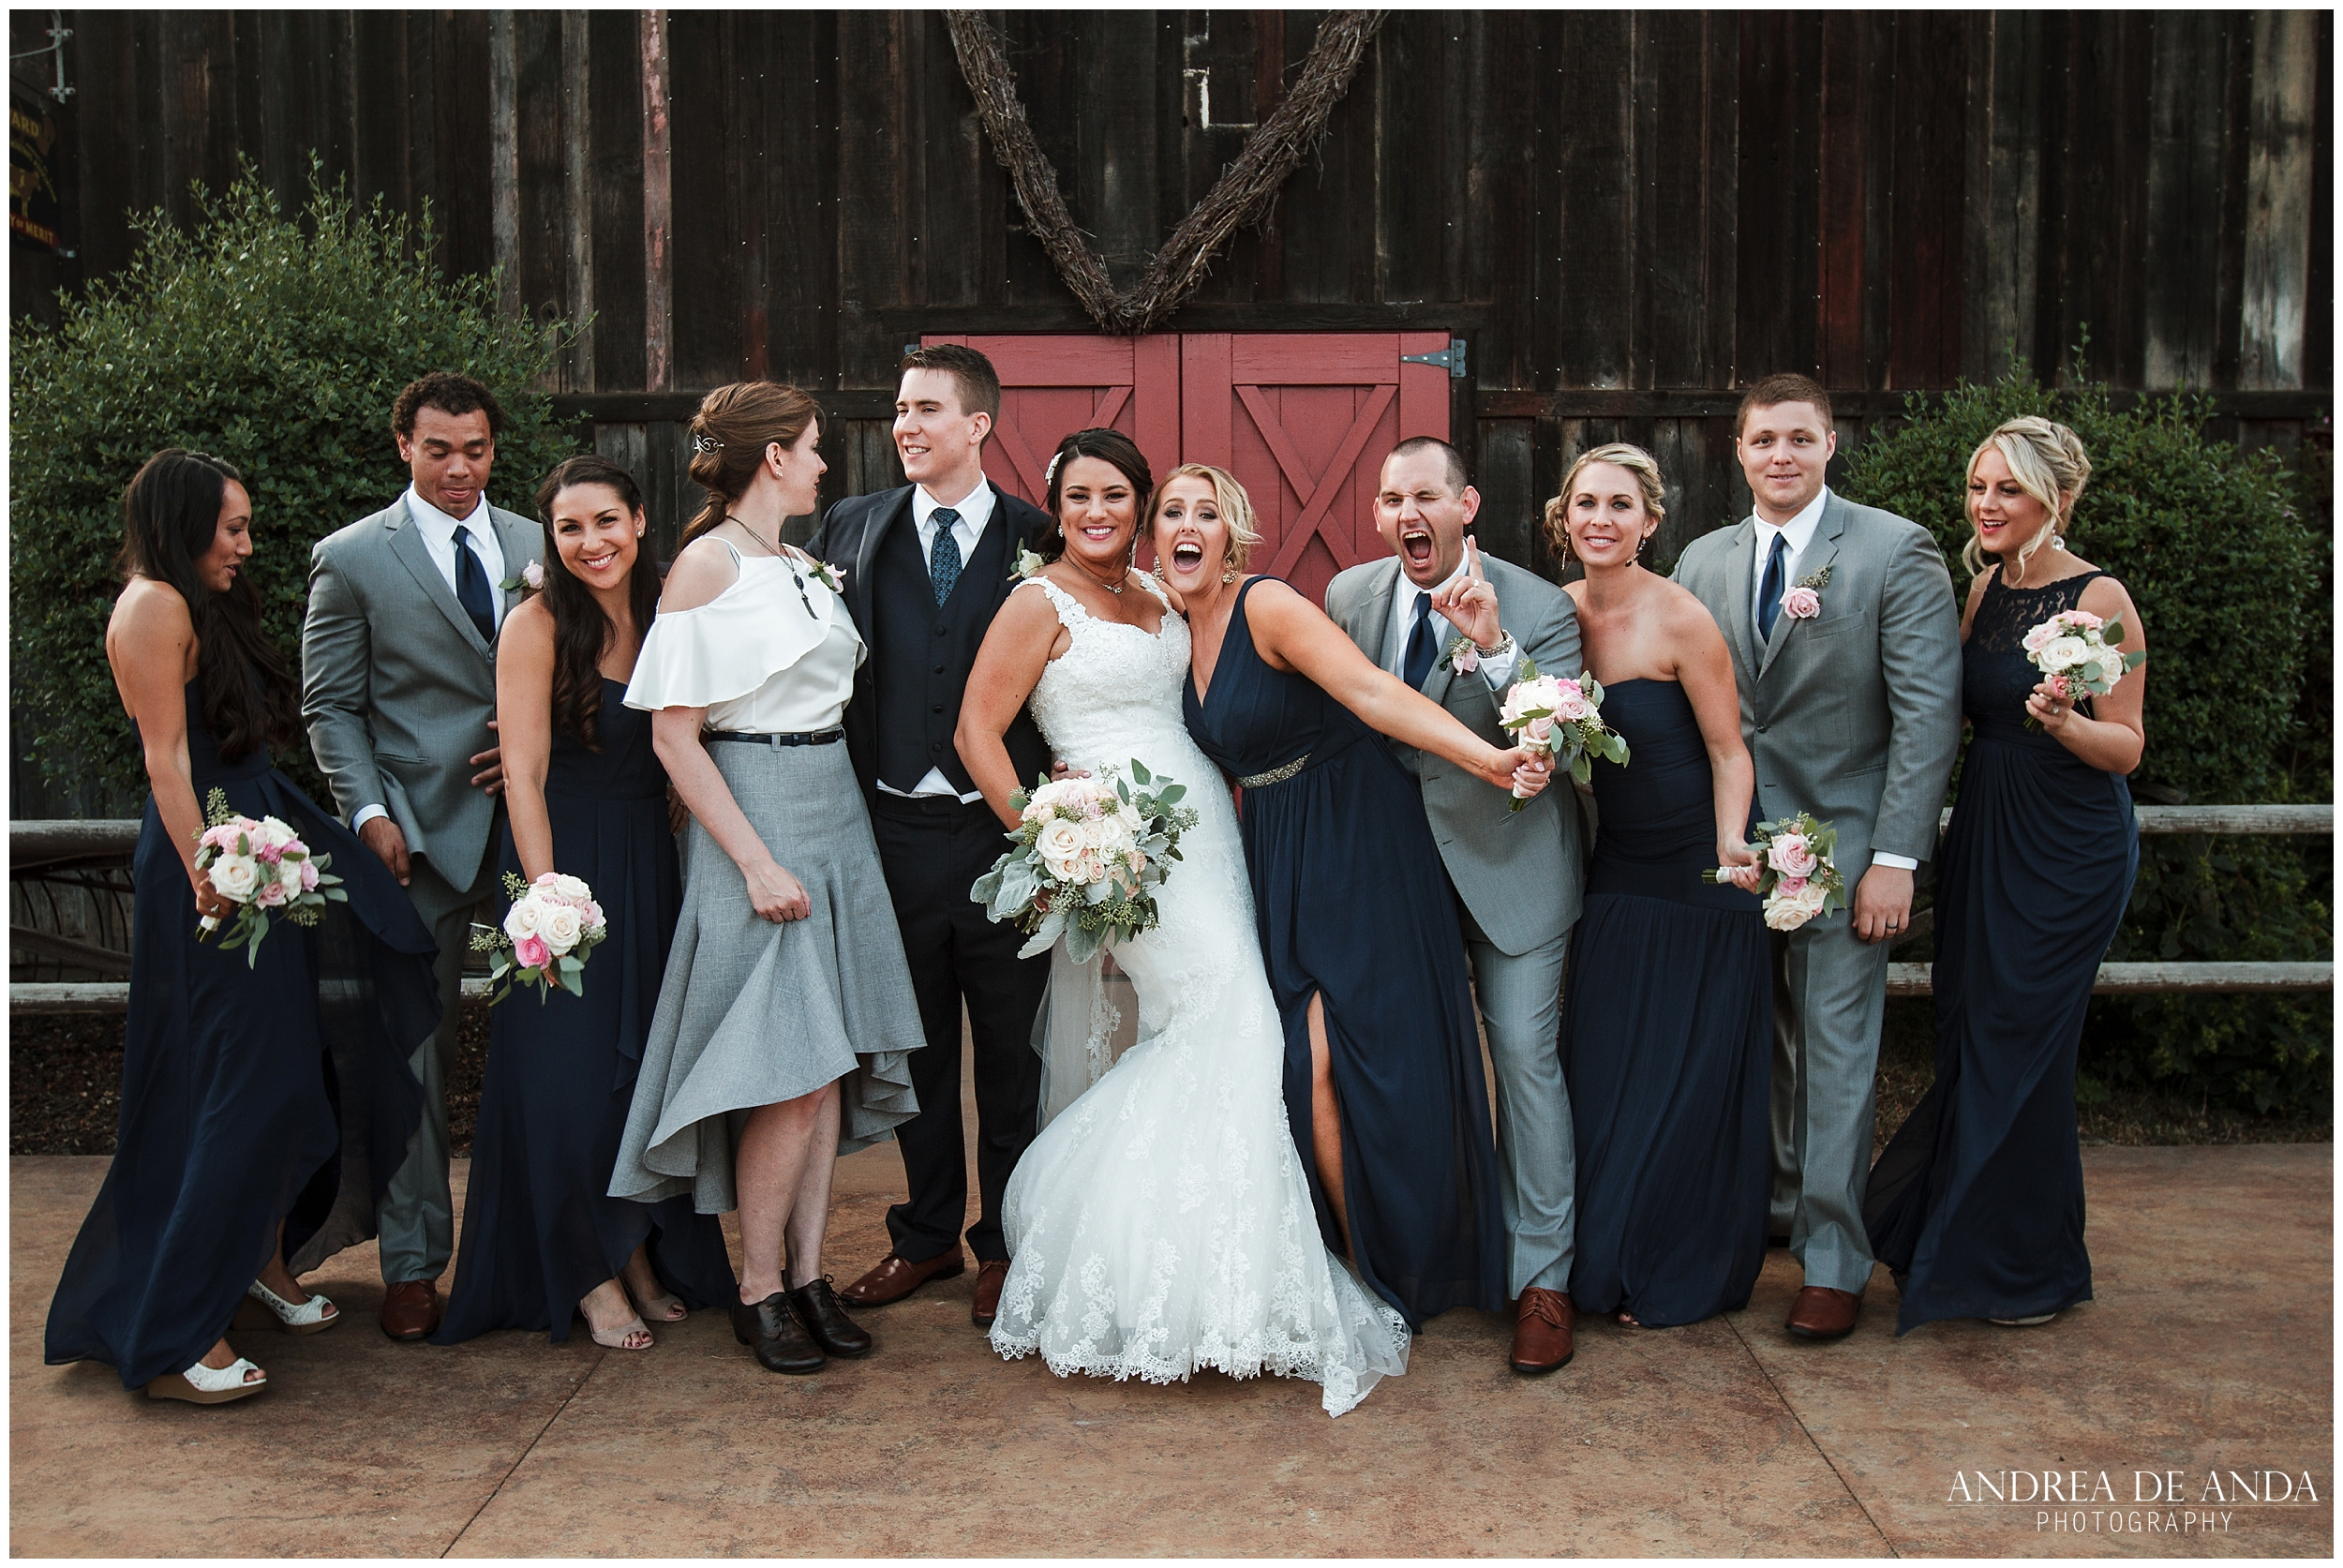 Edwards Barn_Nipomo Wedding_Andrea de Anda Photography__0046.jpg